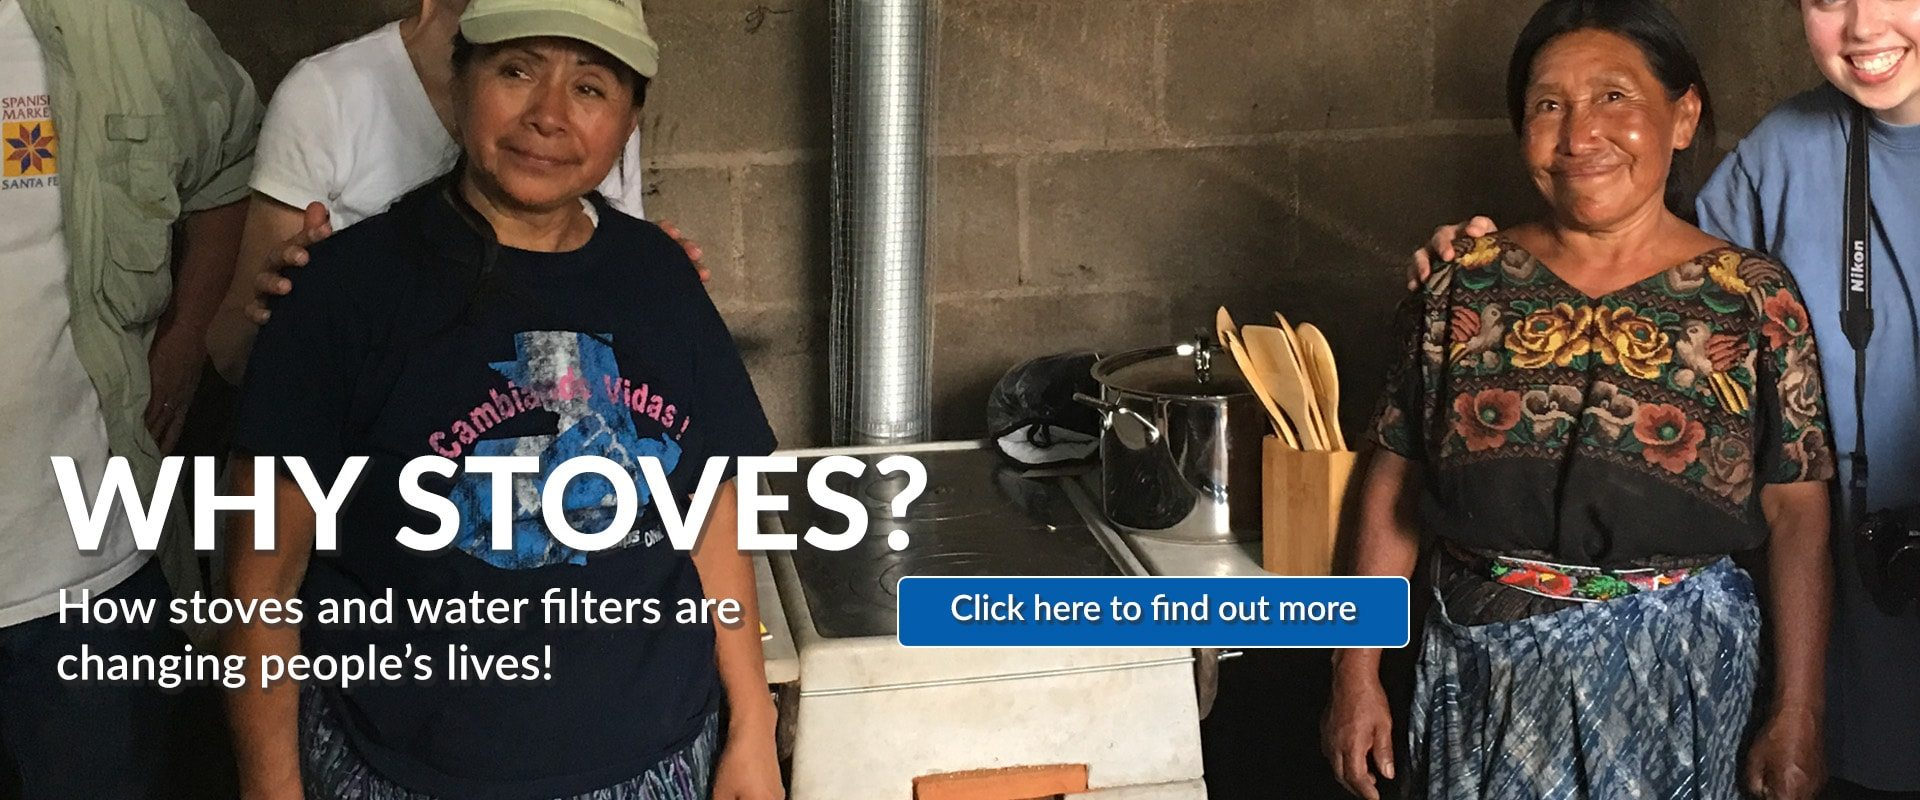 91.3 KGLY East Texas Christian Radio Why Stoves and Water Filters Mission Trip